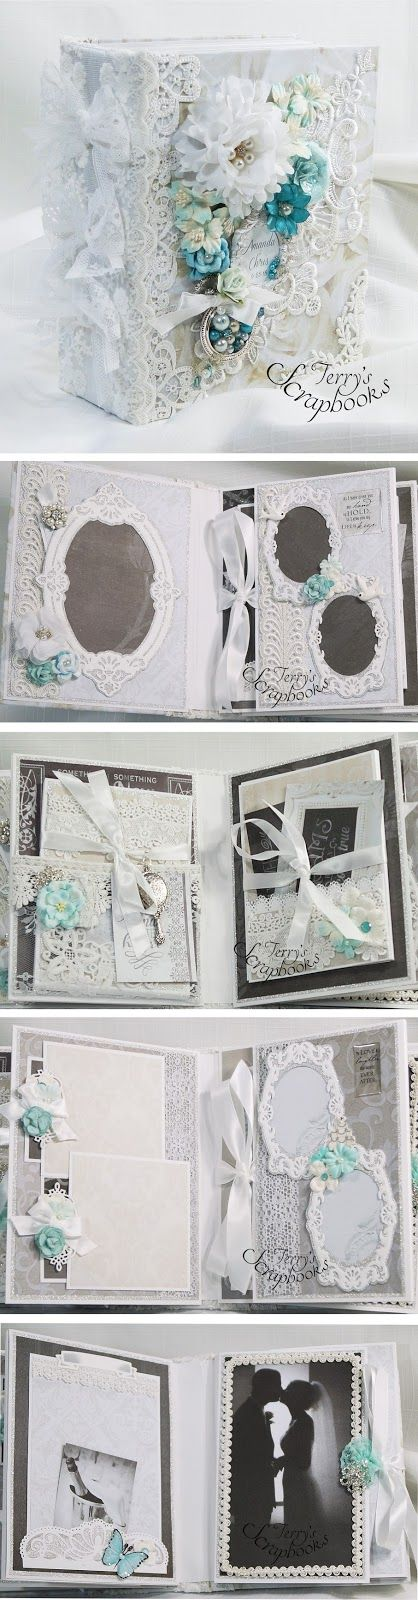 Terry's Scrapbooks: Paper House To Have and to Hold Wedding Mini album...